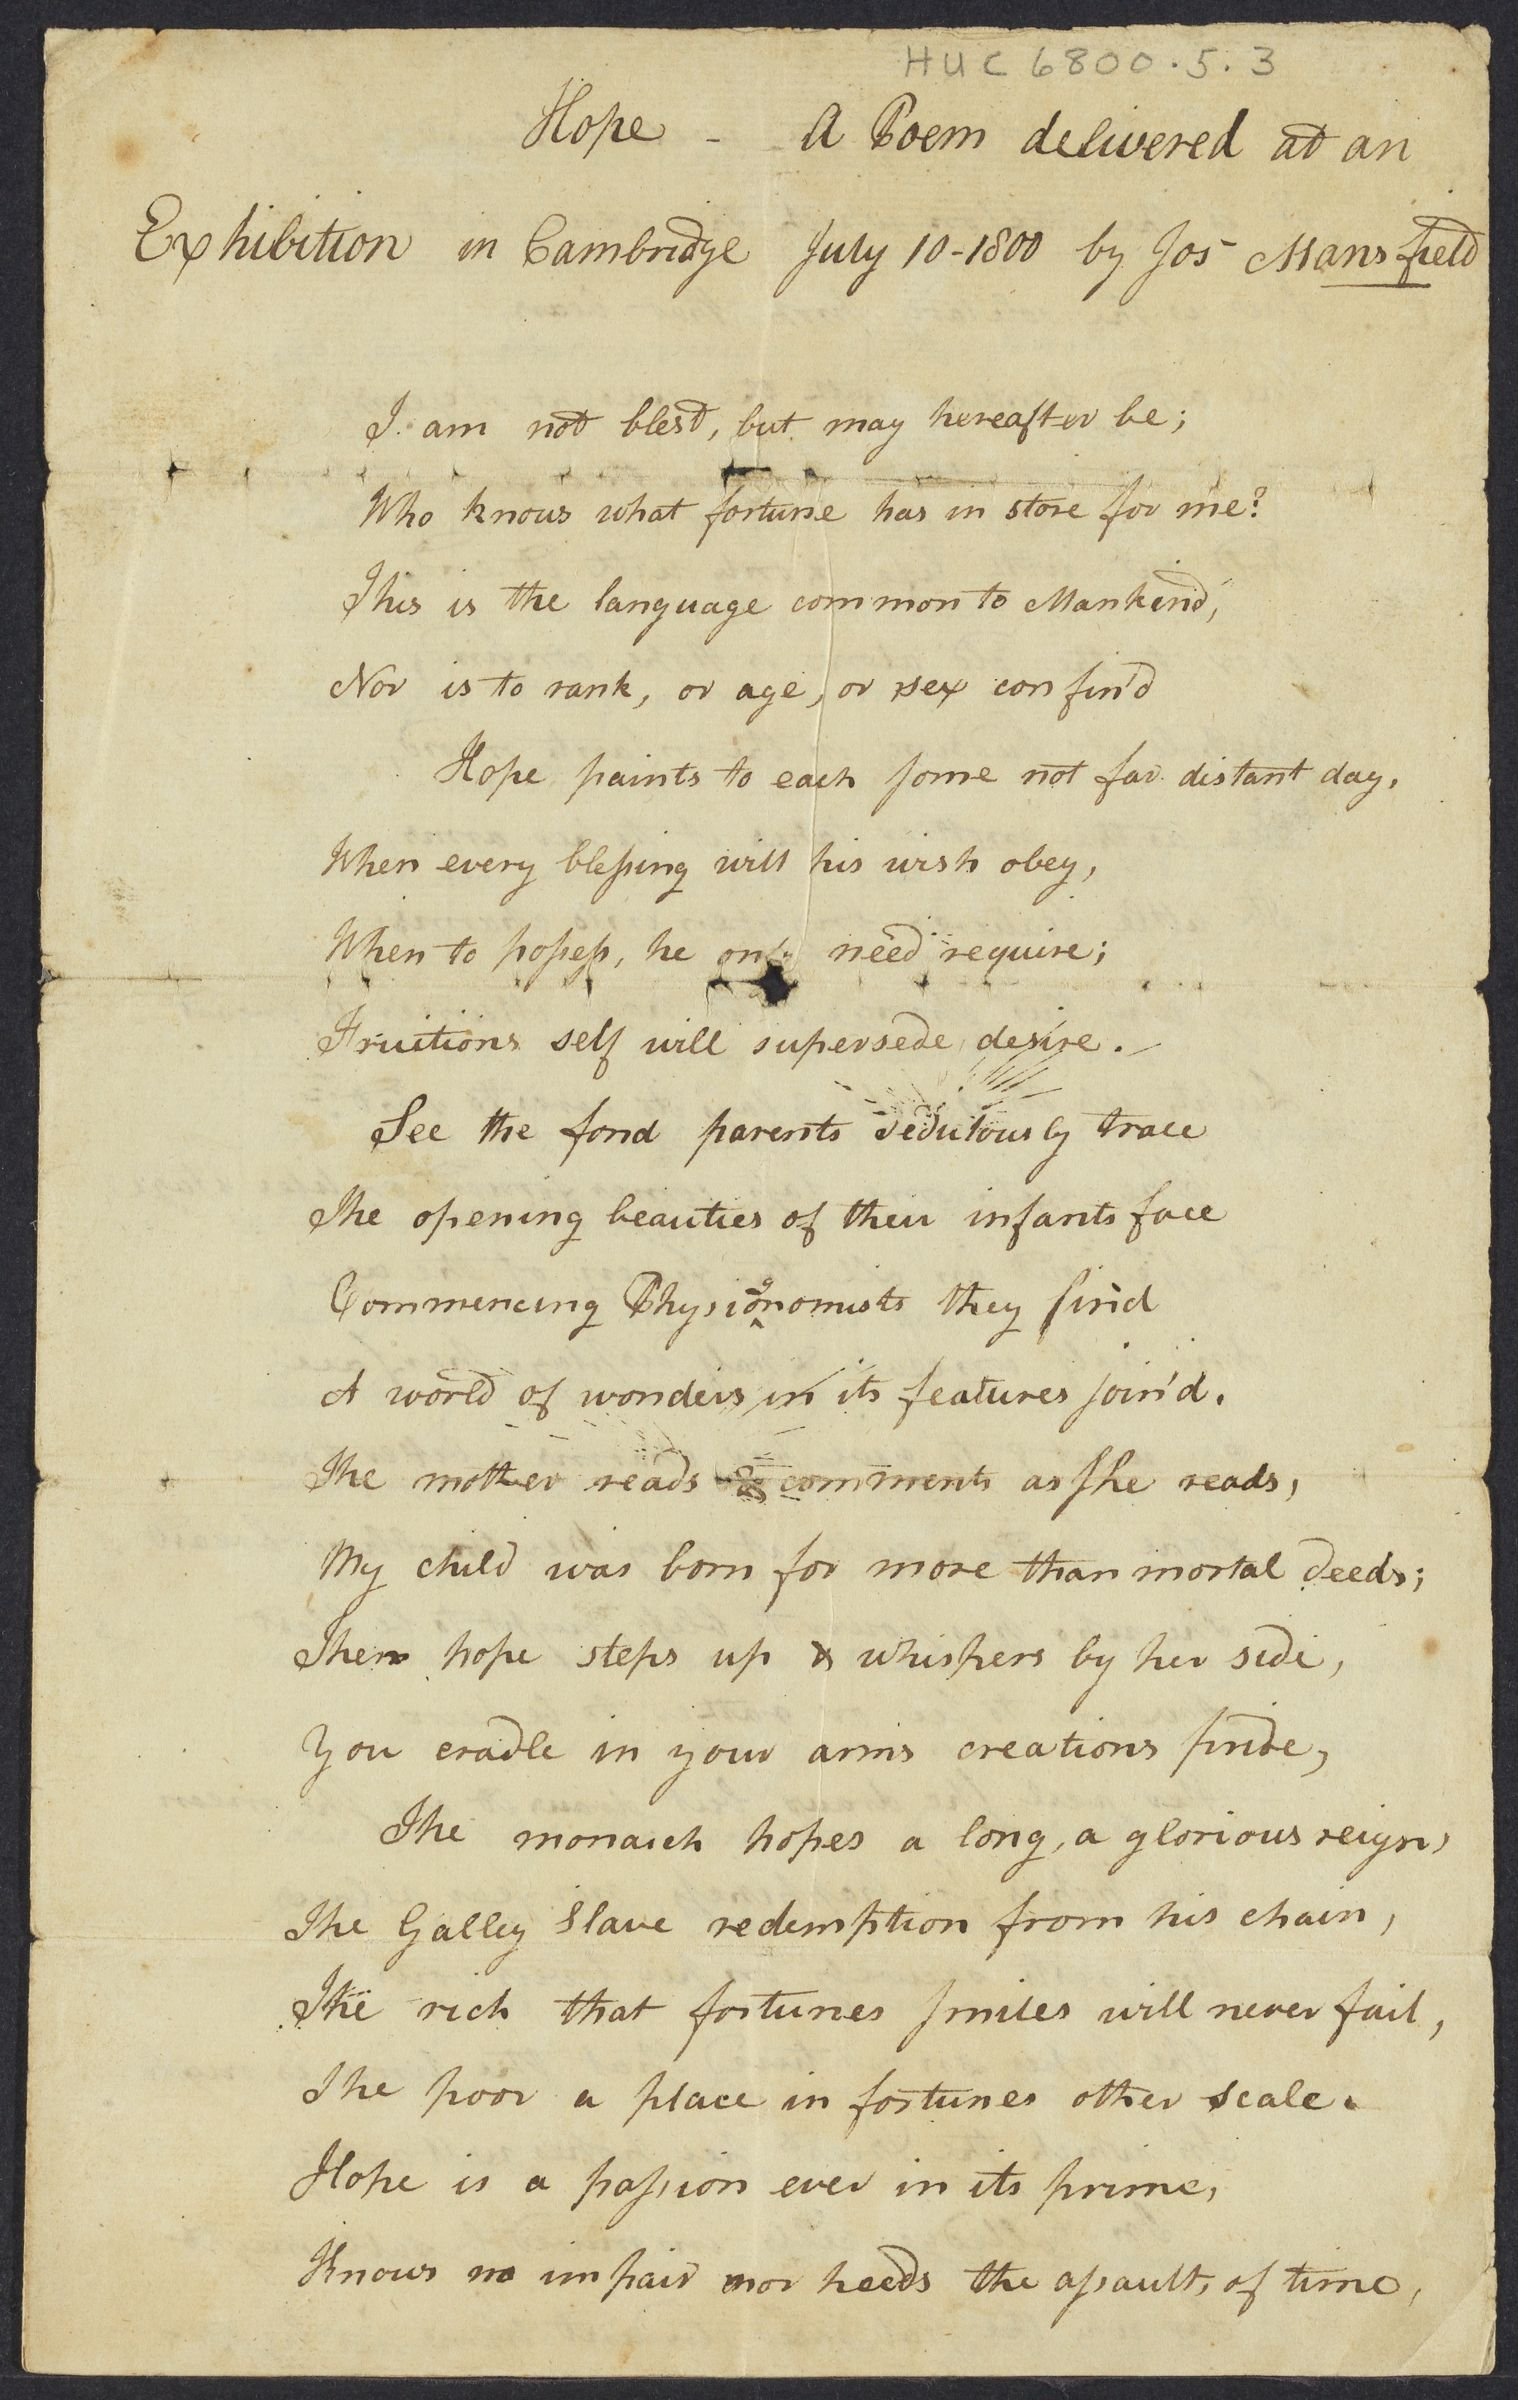 Hope: a poem delivered at an exhibition in Cambridge, July 10, 1800